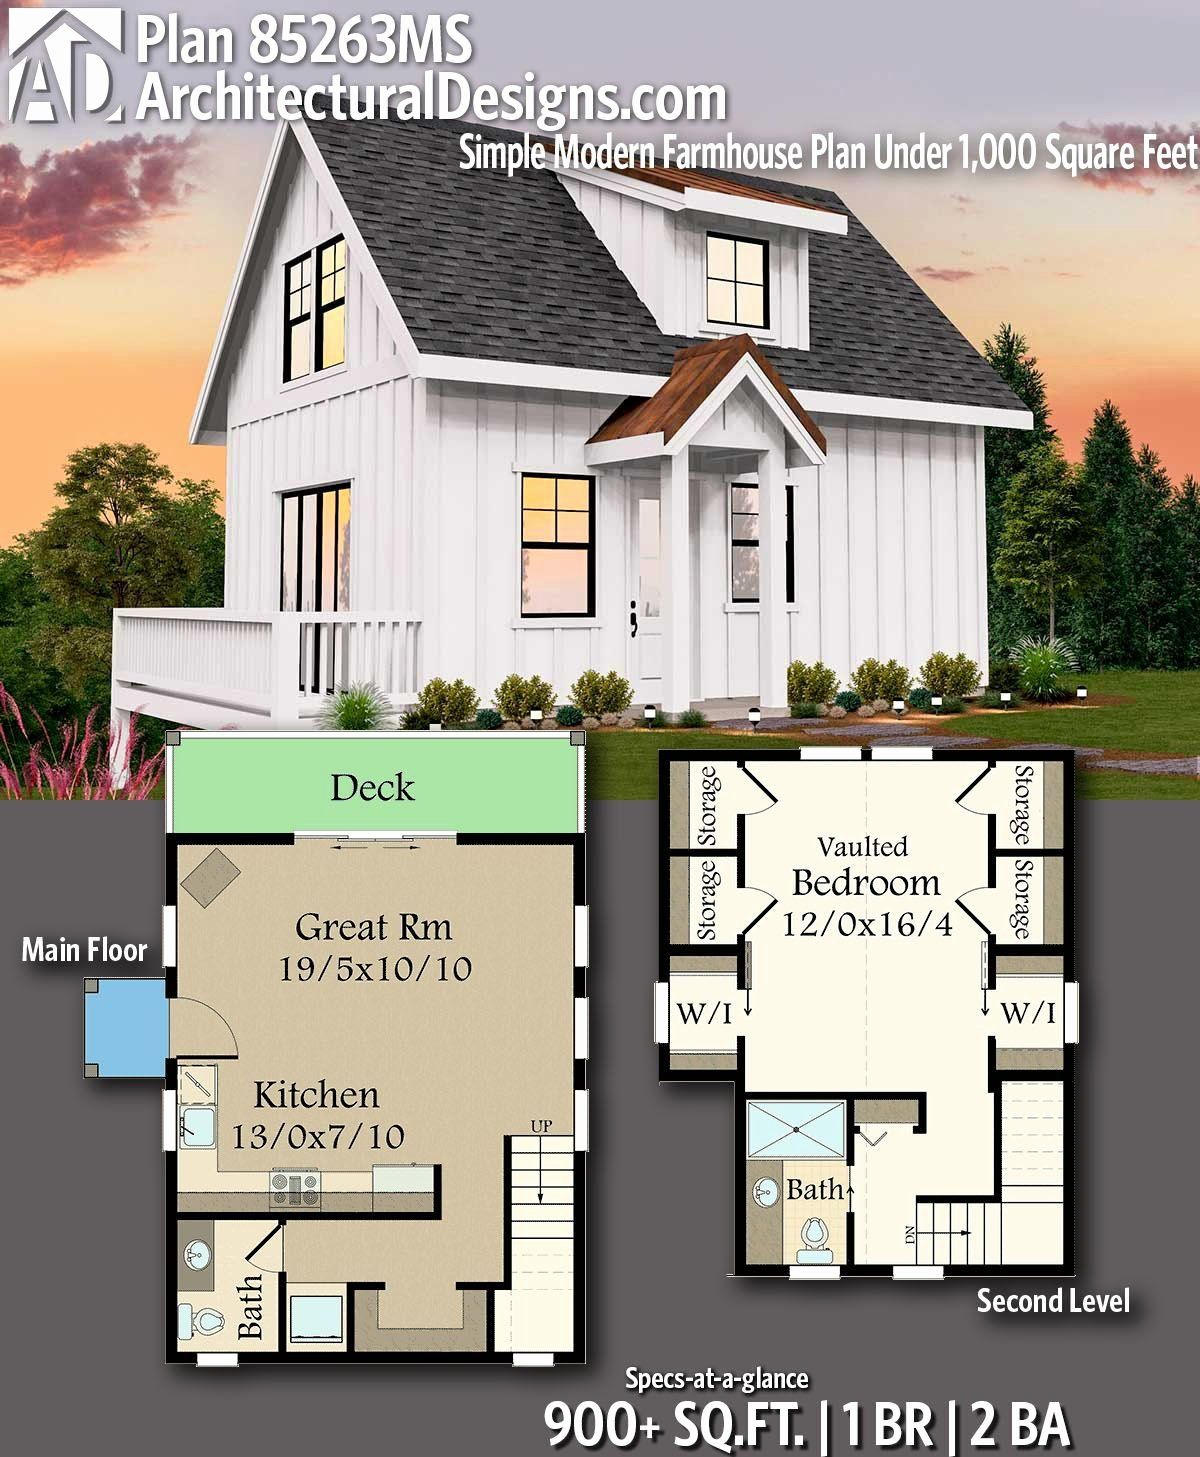 2 Bedroom Under 1000 Unique Plan Ms Simple Modern Farmhouse Plan Under 1 000 Modern Farmhouse Plans House Plans Farmhouse Tiny House Design